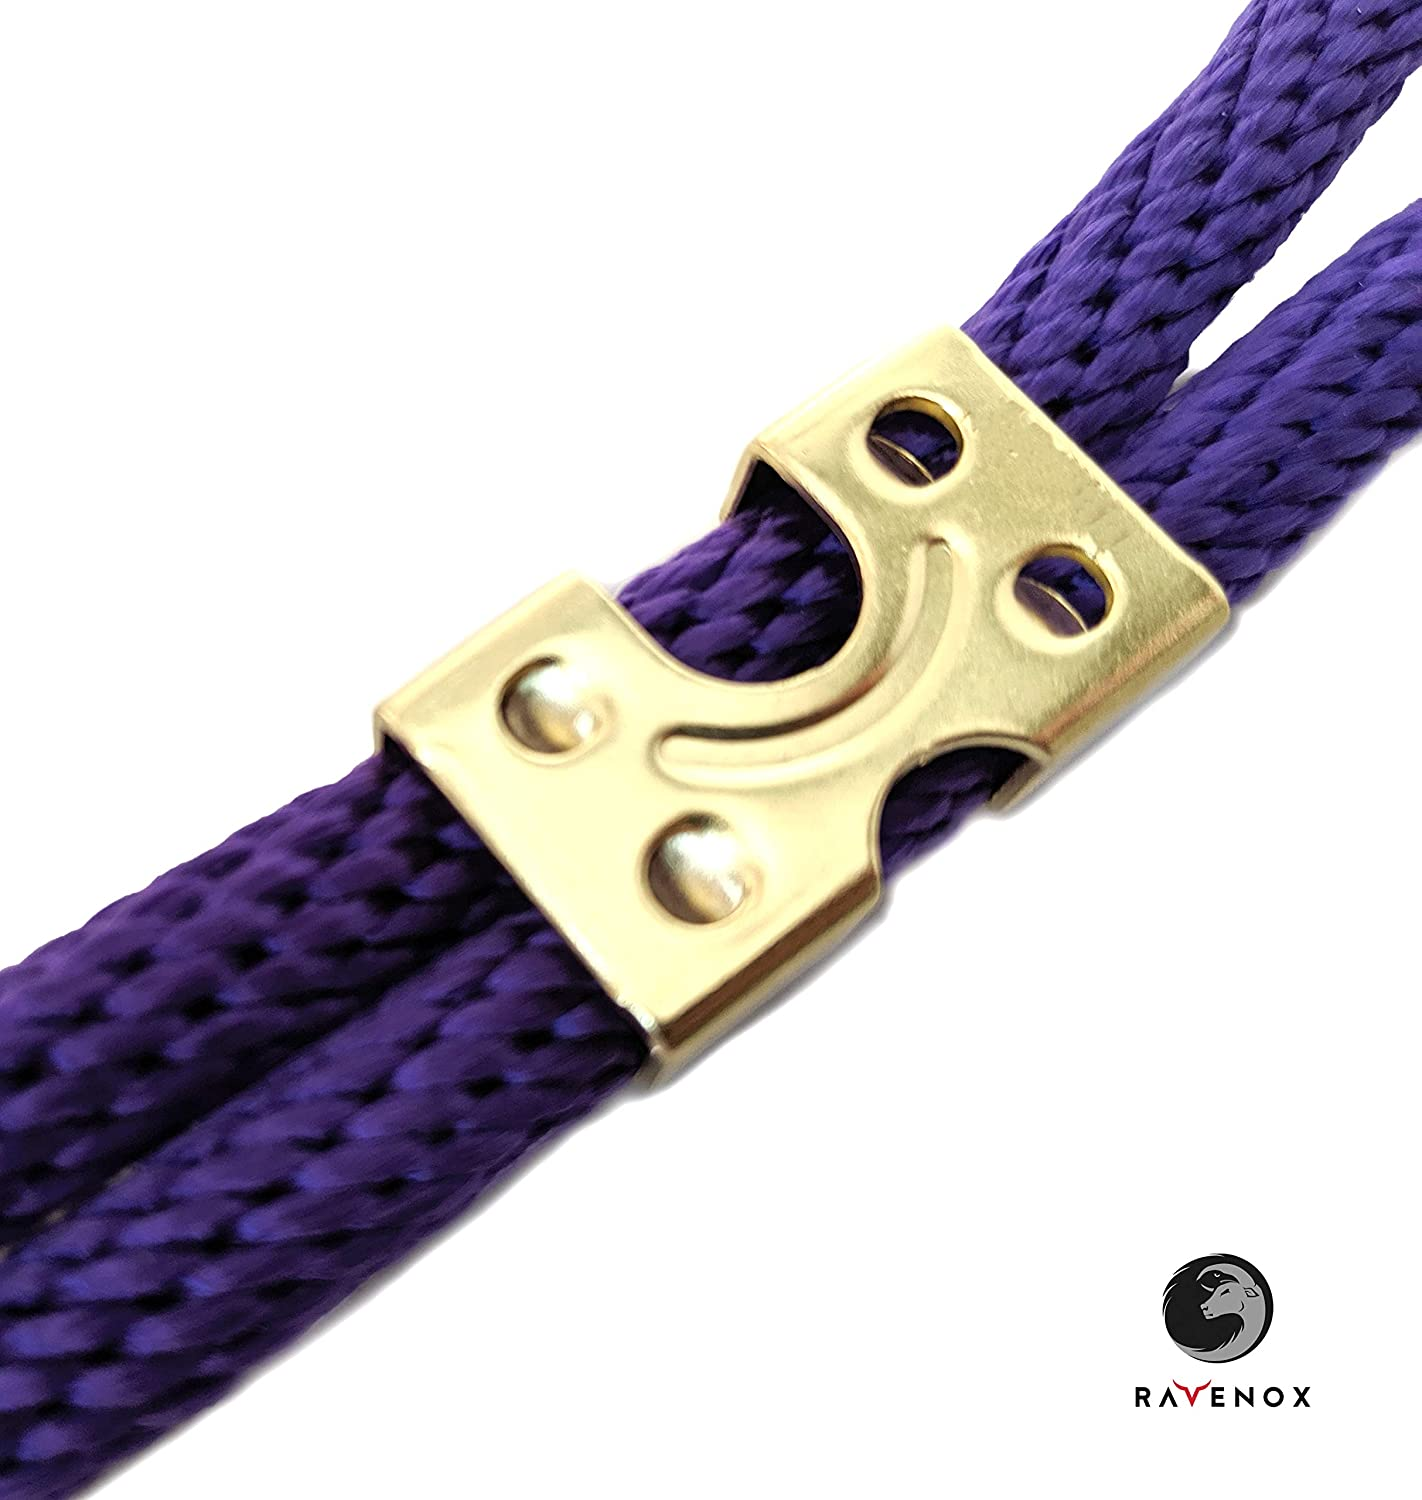 Ravenox Metal Clamps for Rope | 3//8-inch x 100 Pack Cables /& Cords Brass Plated Metal Clips for 3//8-inch 1//2-inch or 5//8-inch Ropes | Medium Duty Zinc Plated or Brass Plated Double Rope Clamps